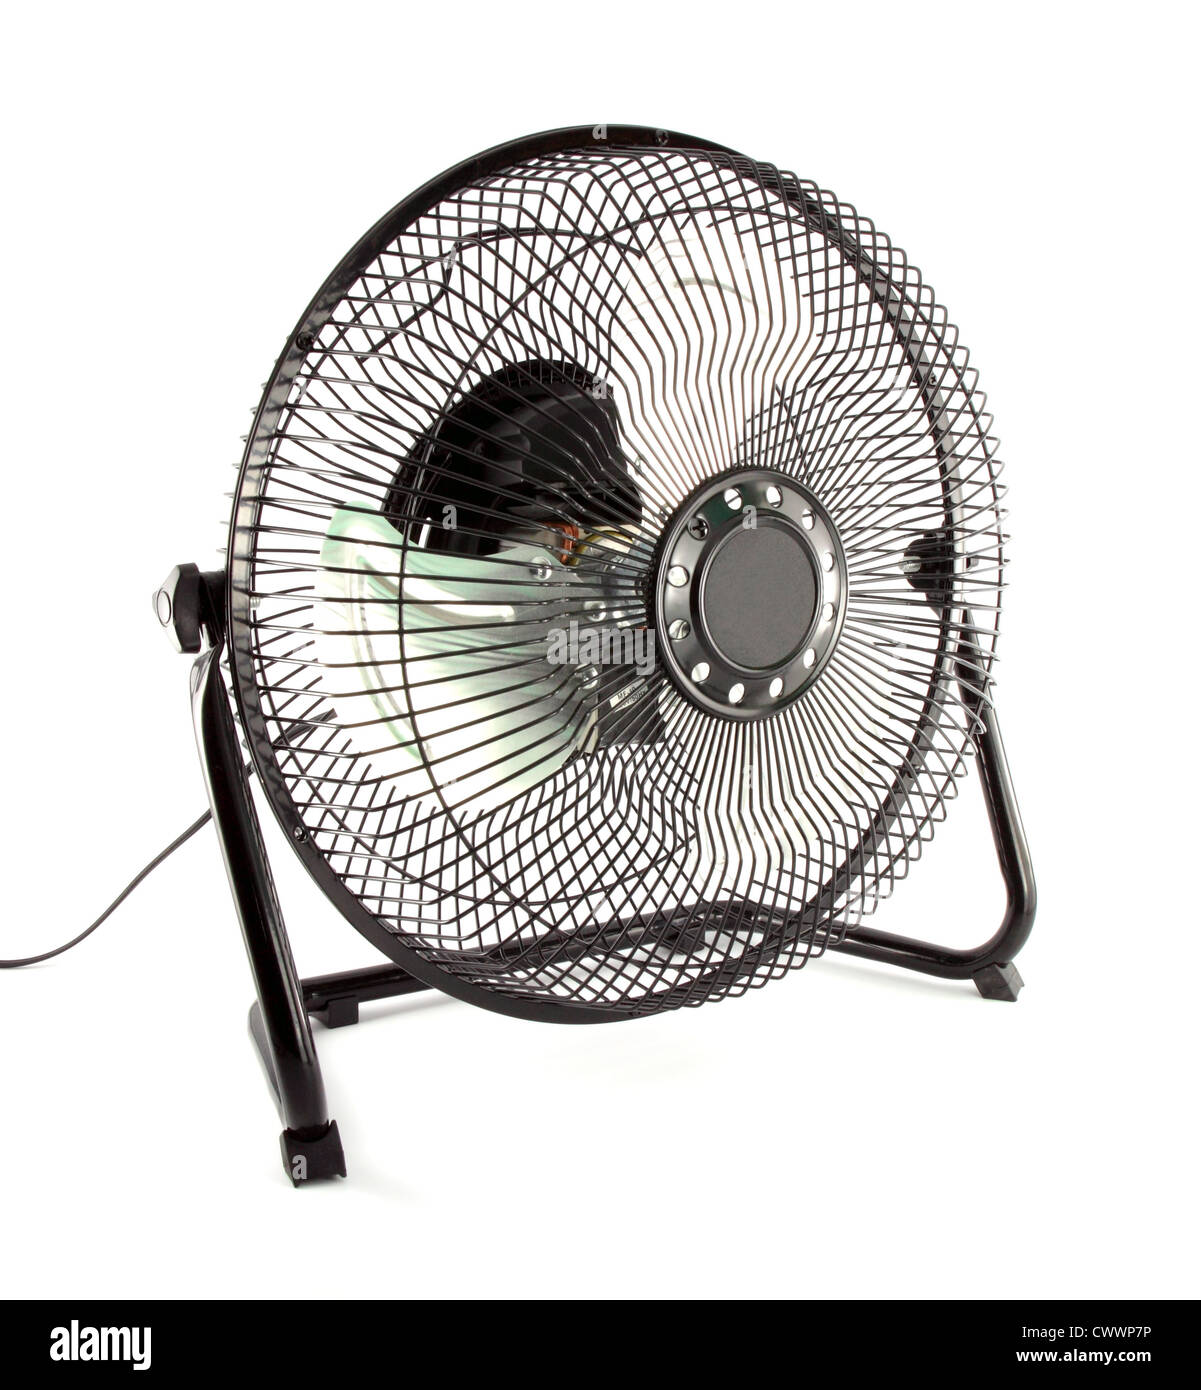 The black mini fan to reduce some hot weather - Stock Image